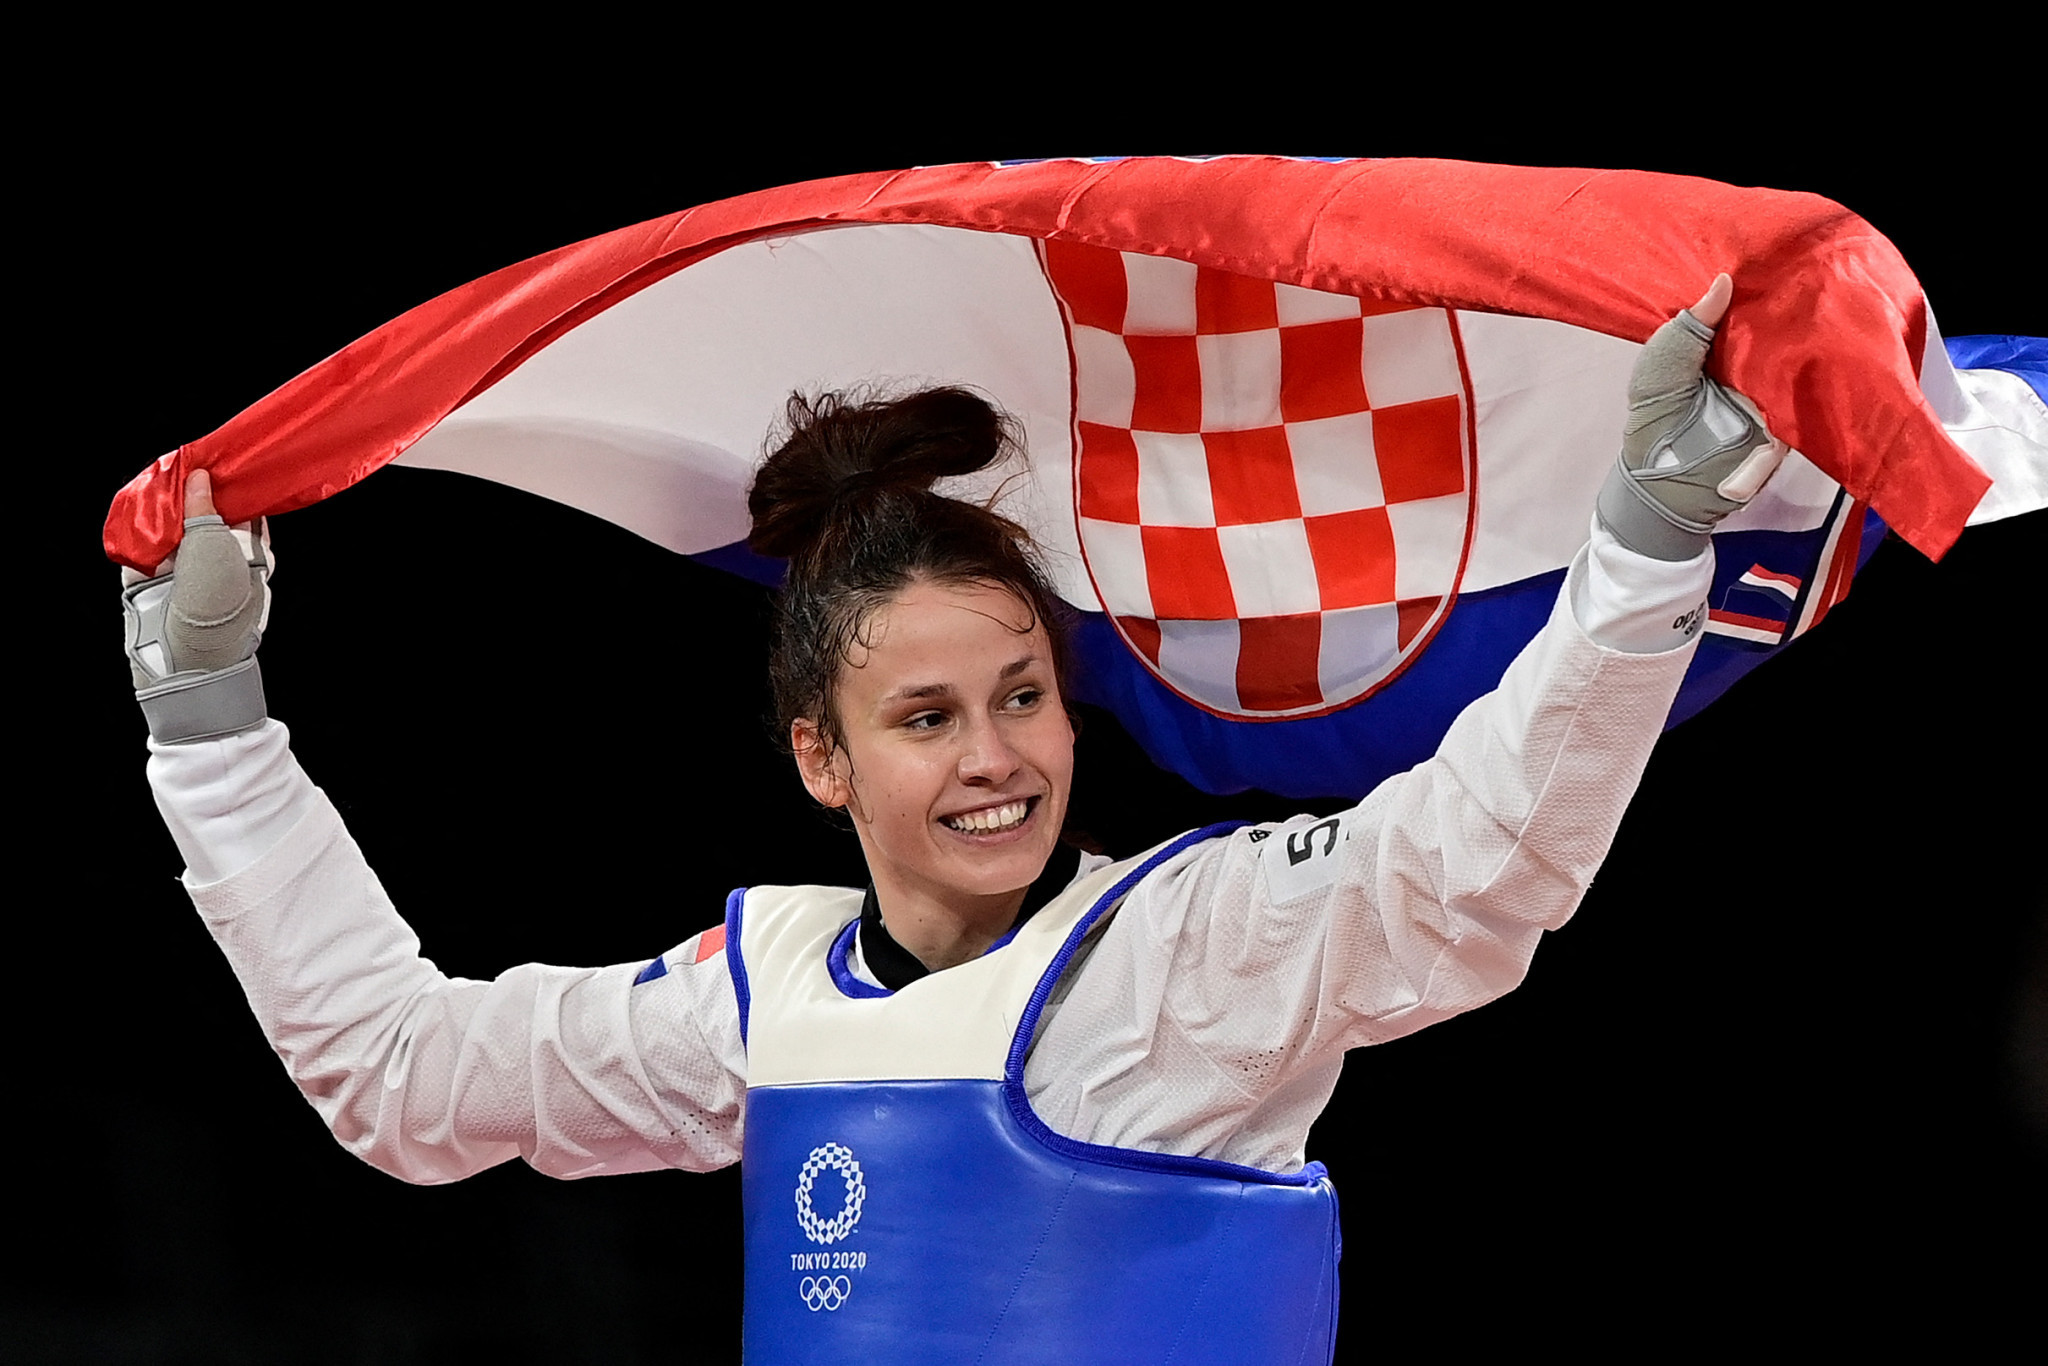 Matea Jelić became Croatia's first-ever gold medallist in taekwondo with victory at Tokyo 2020 ©Getty Images